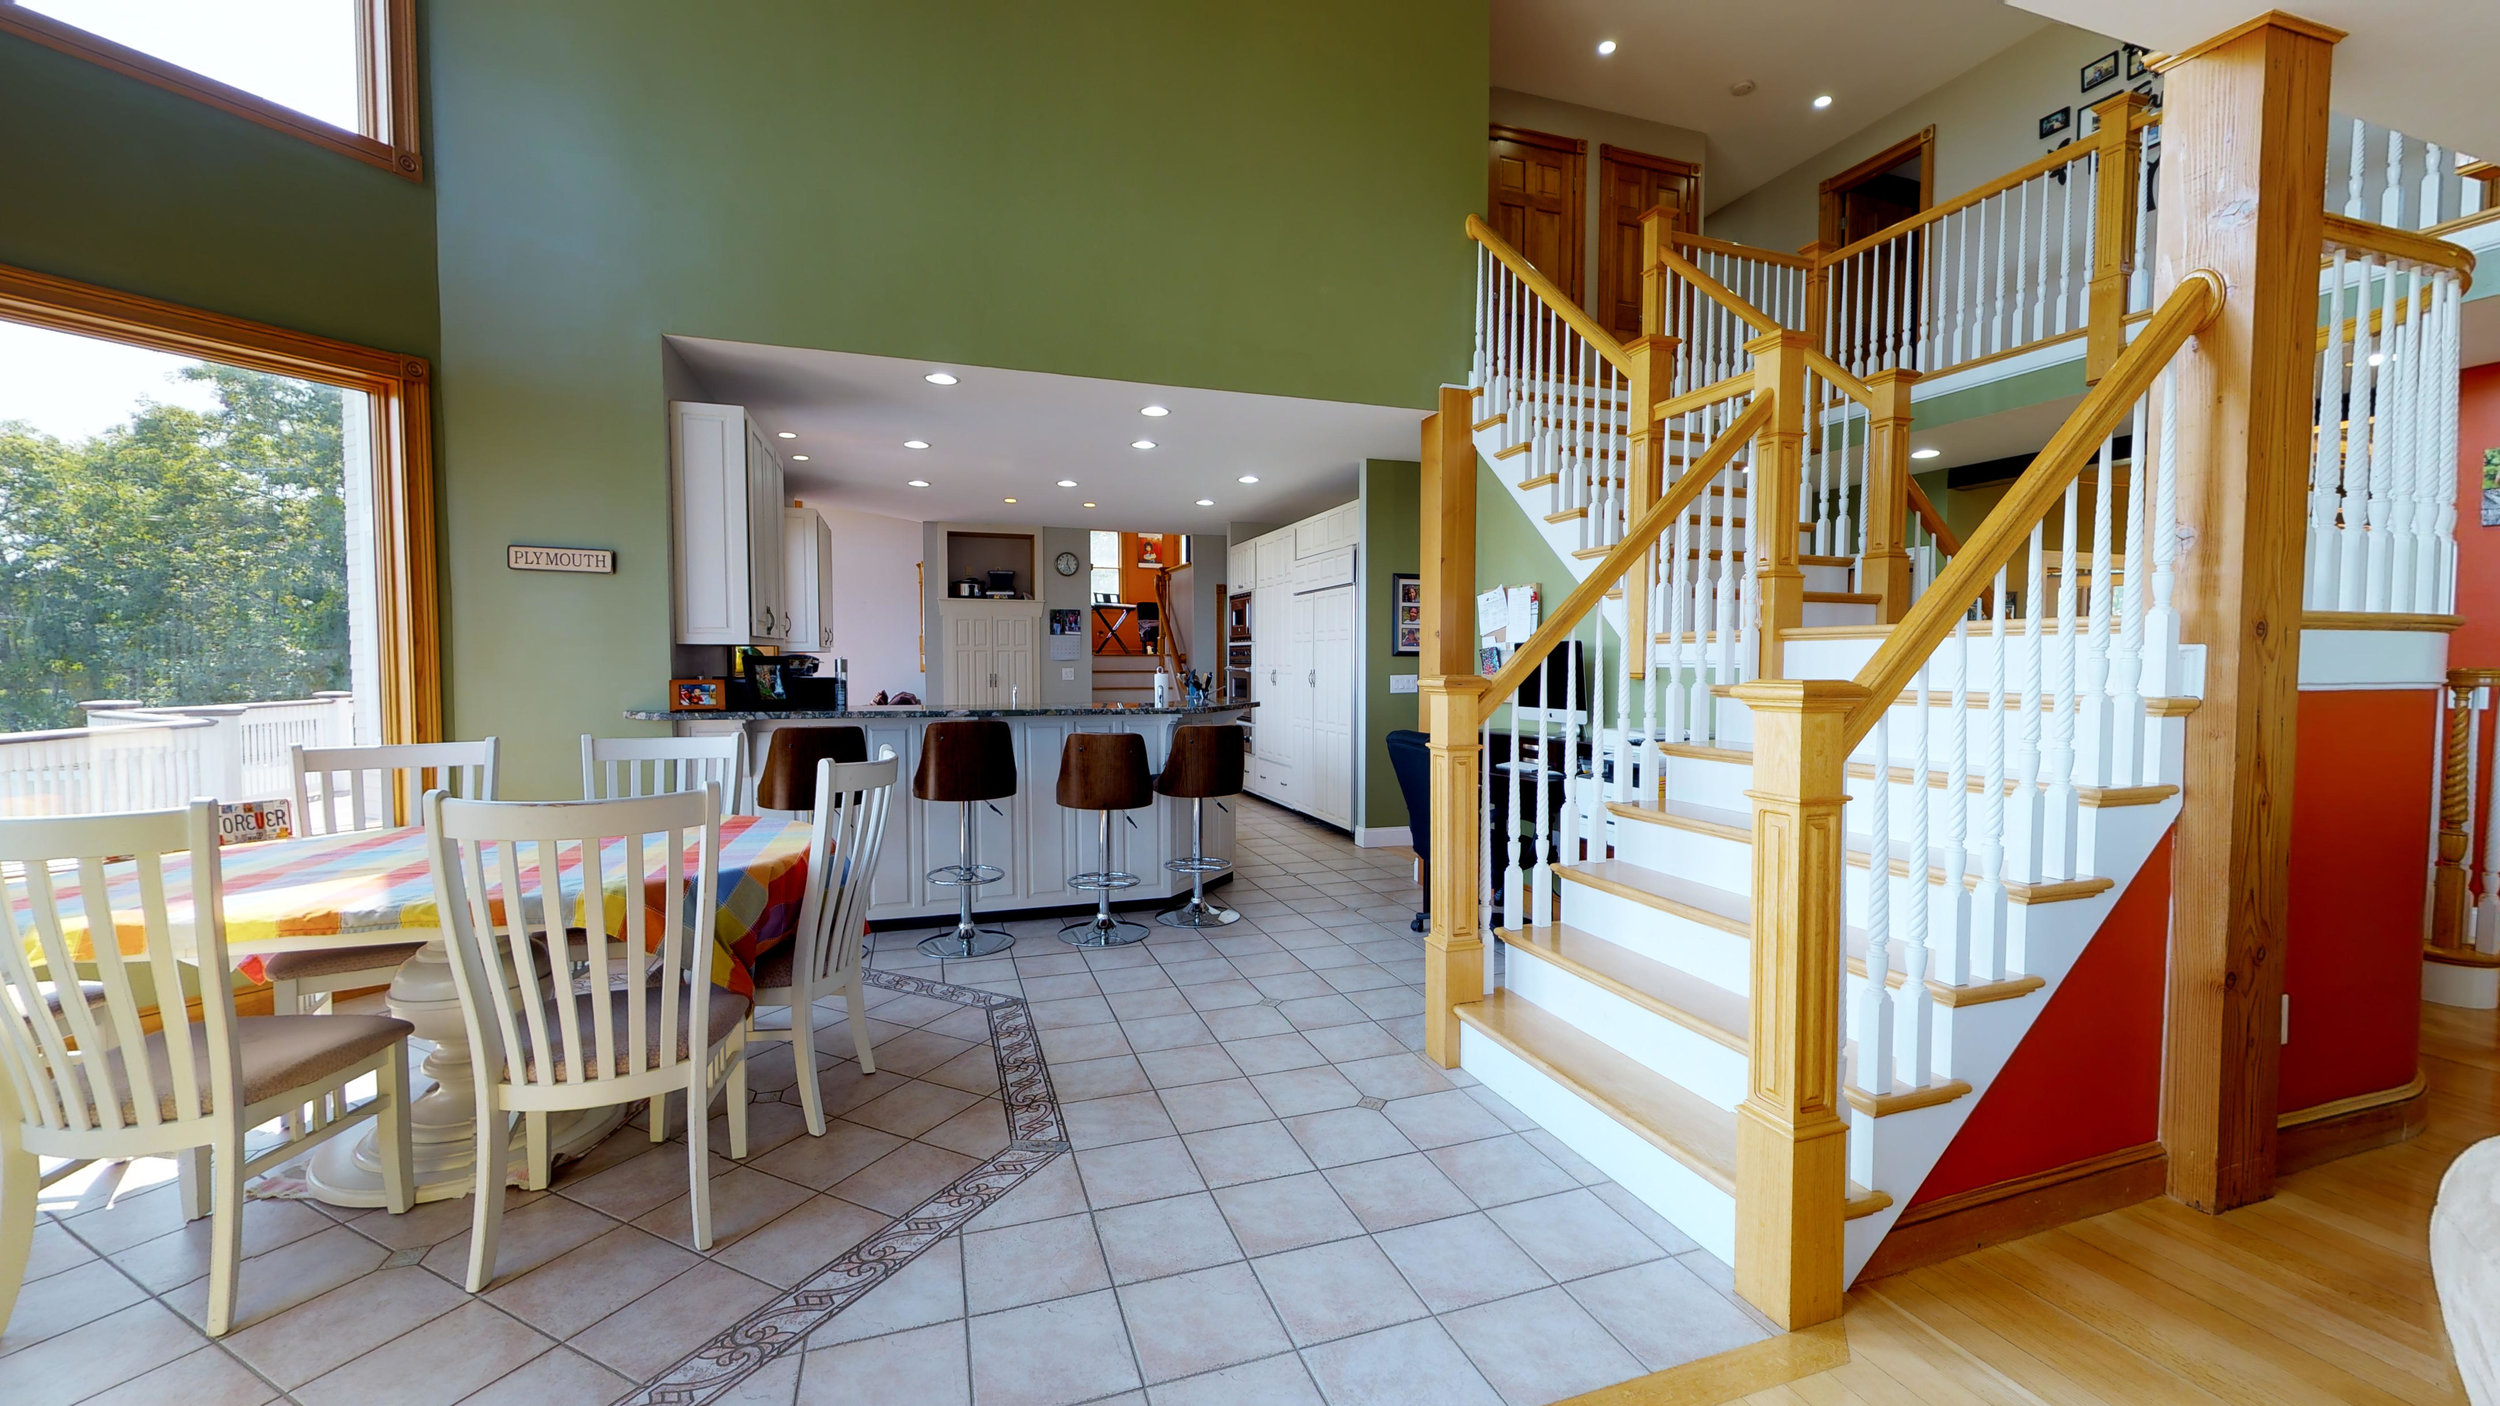 5 Clare Road - Click to View